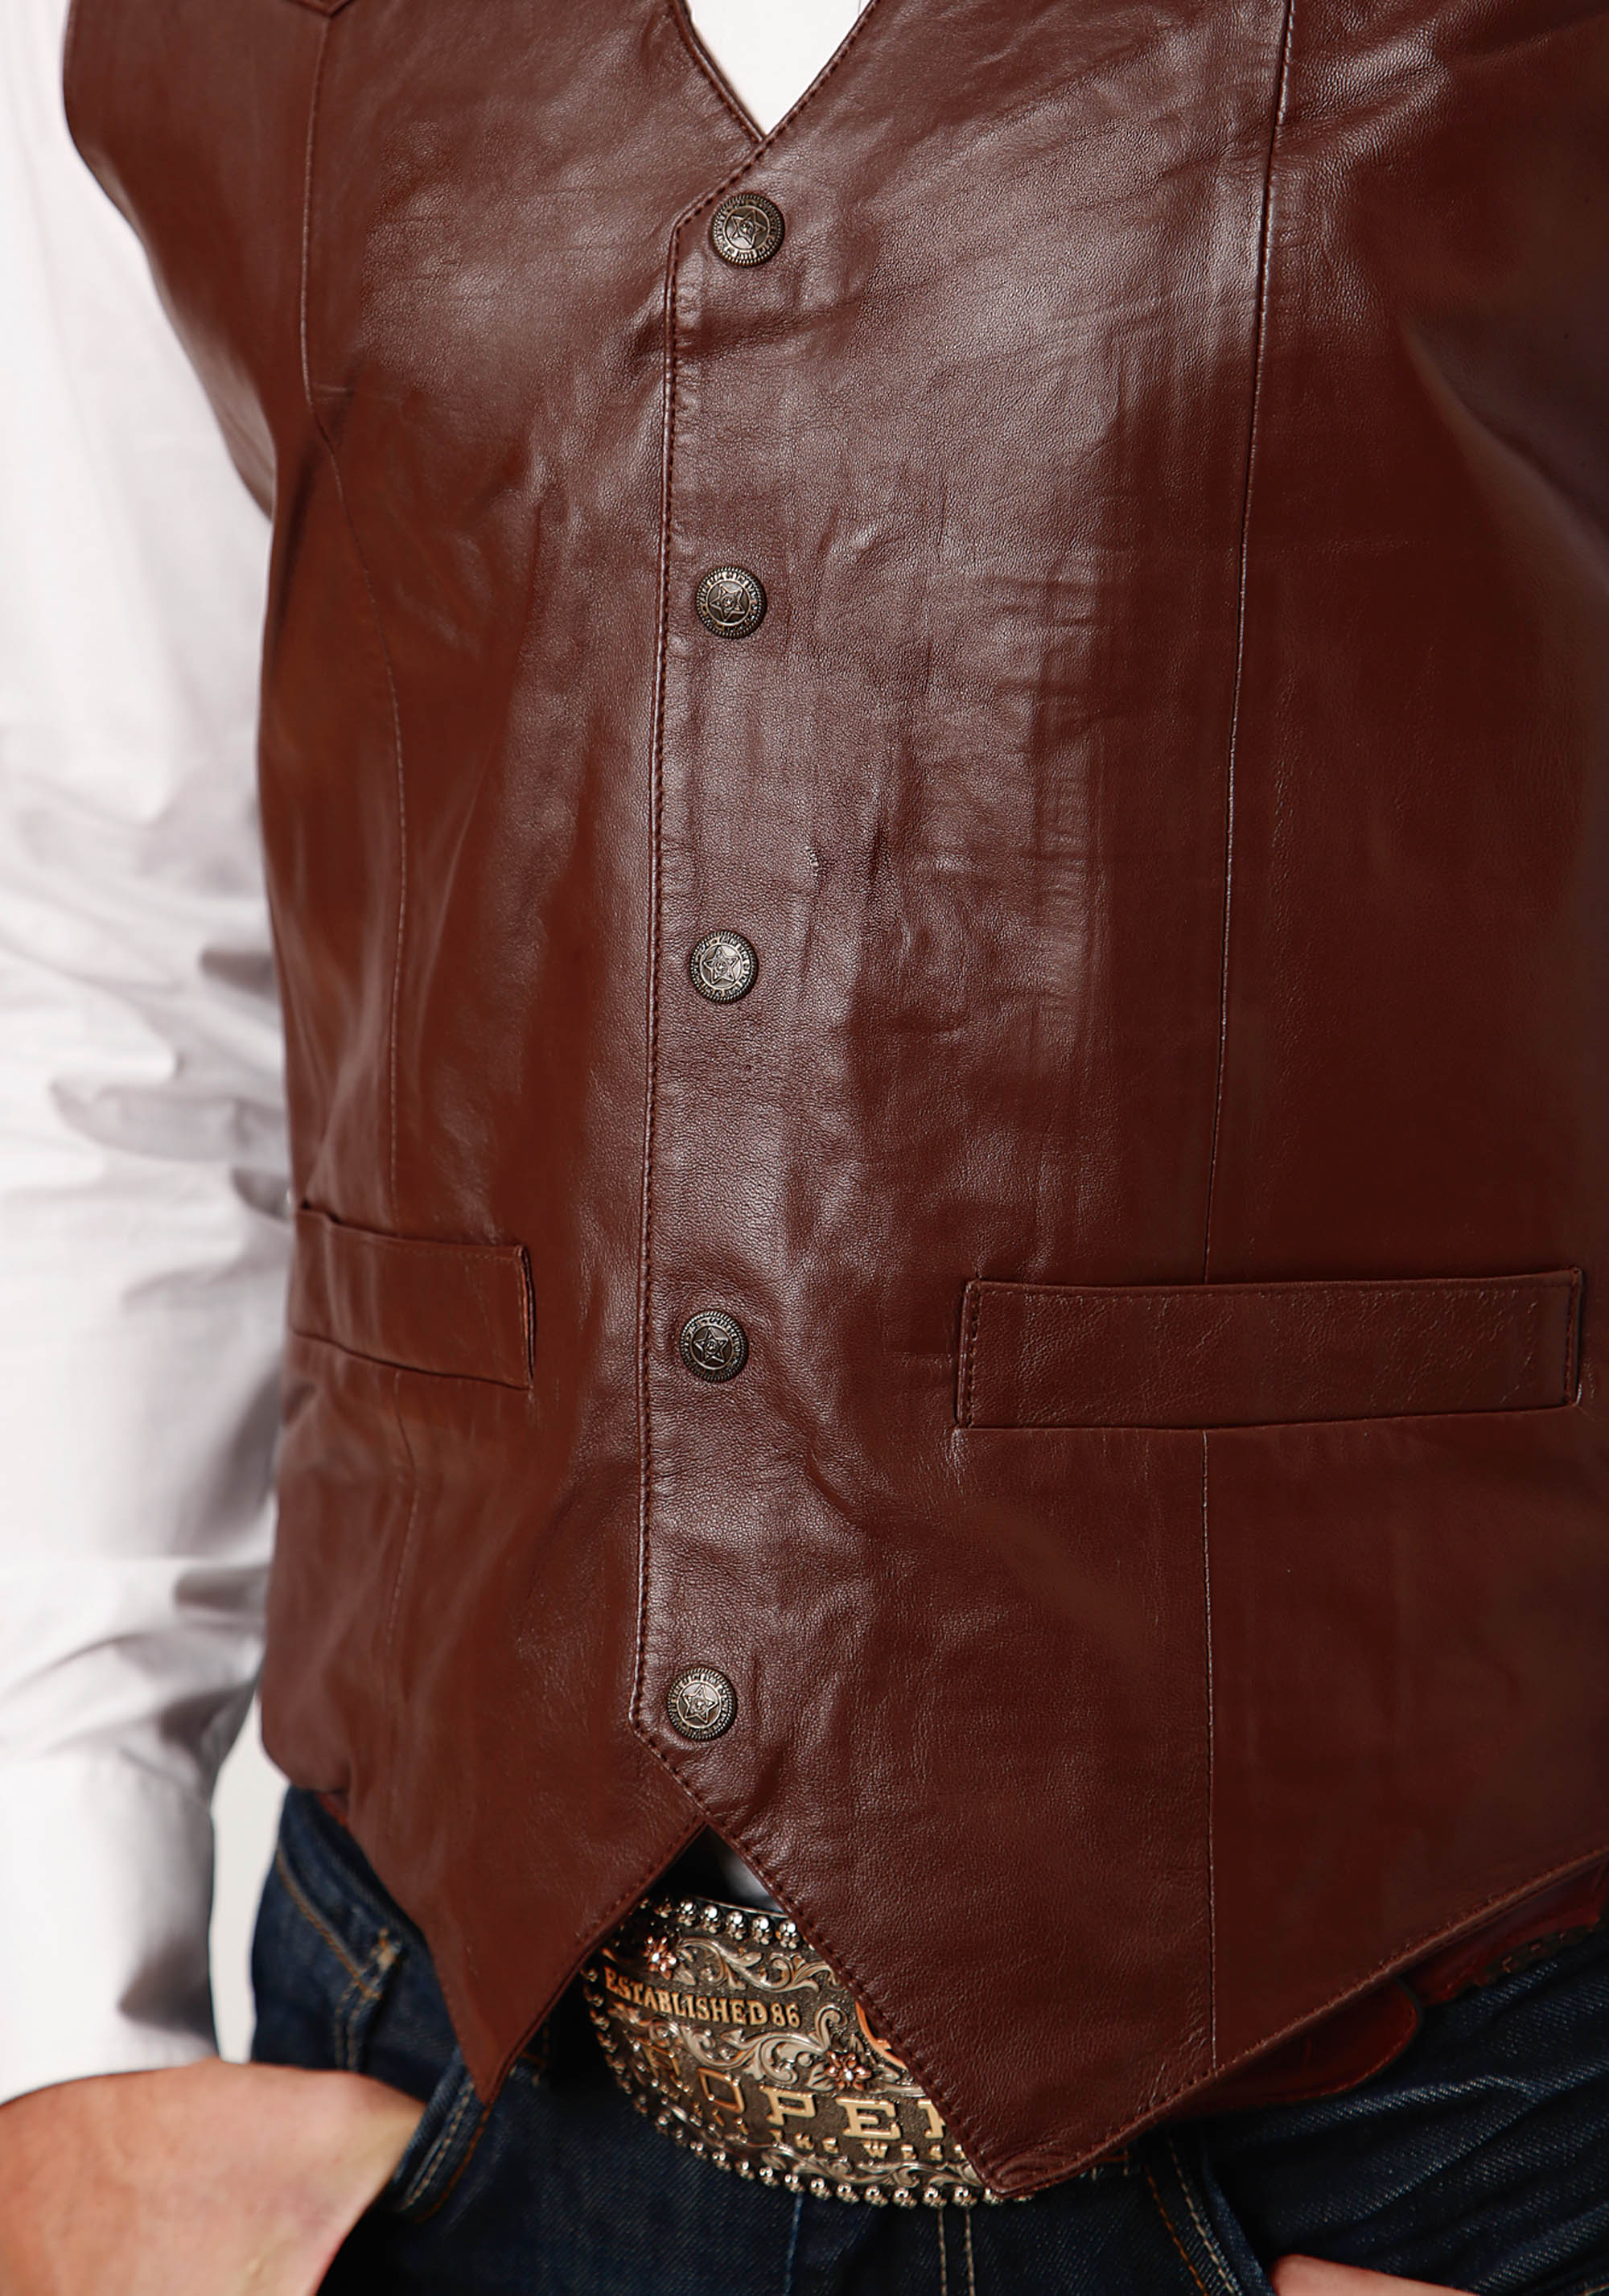 LEATHER OUTERWEAR MENS BROWN TALL MAN DARK BROWN LAMB NAPPA VEST LAMB SKIN NAPPA LEATHER